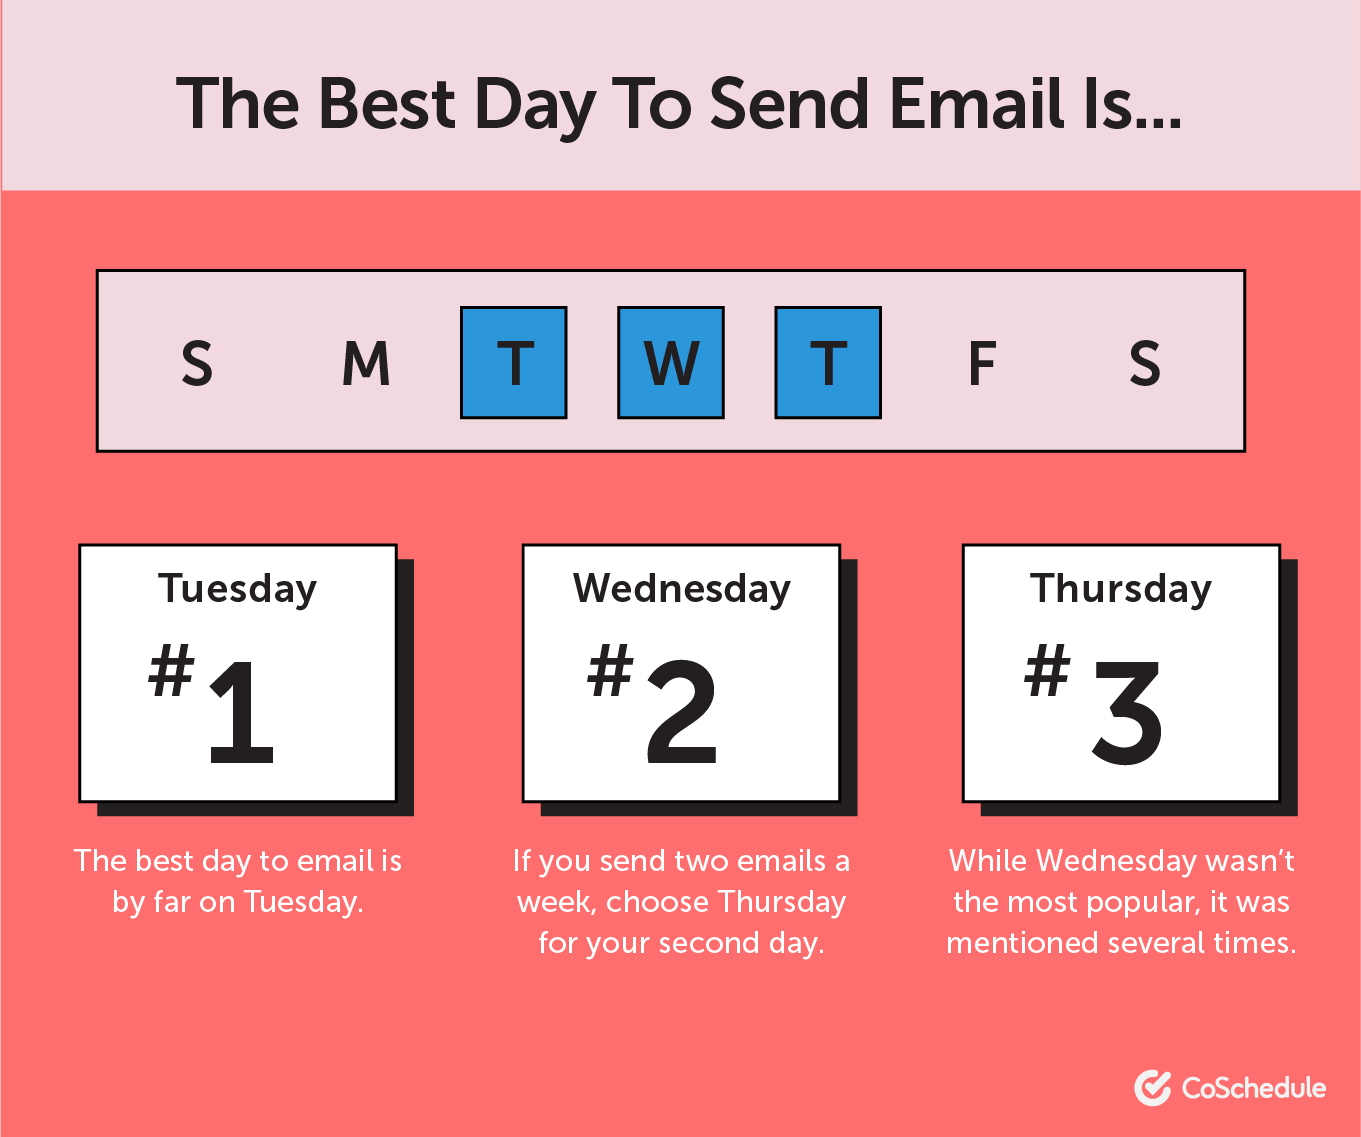 The beset day to send an email